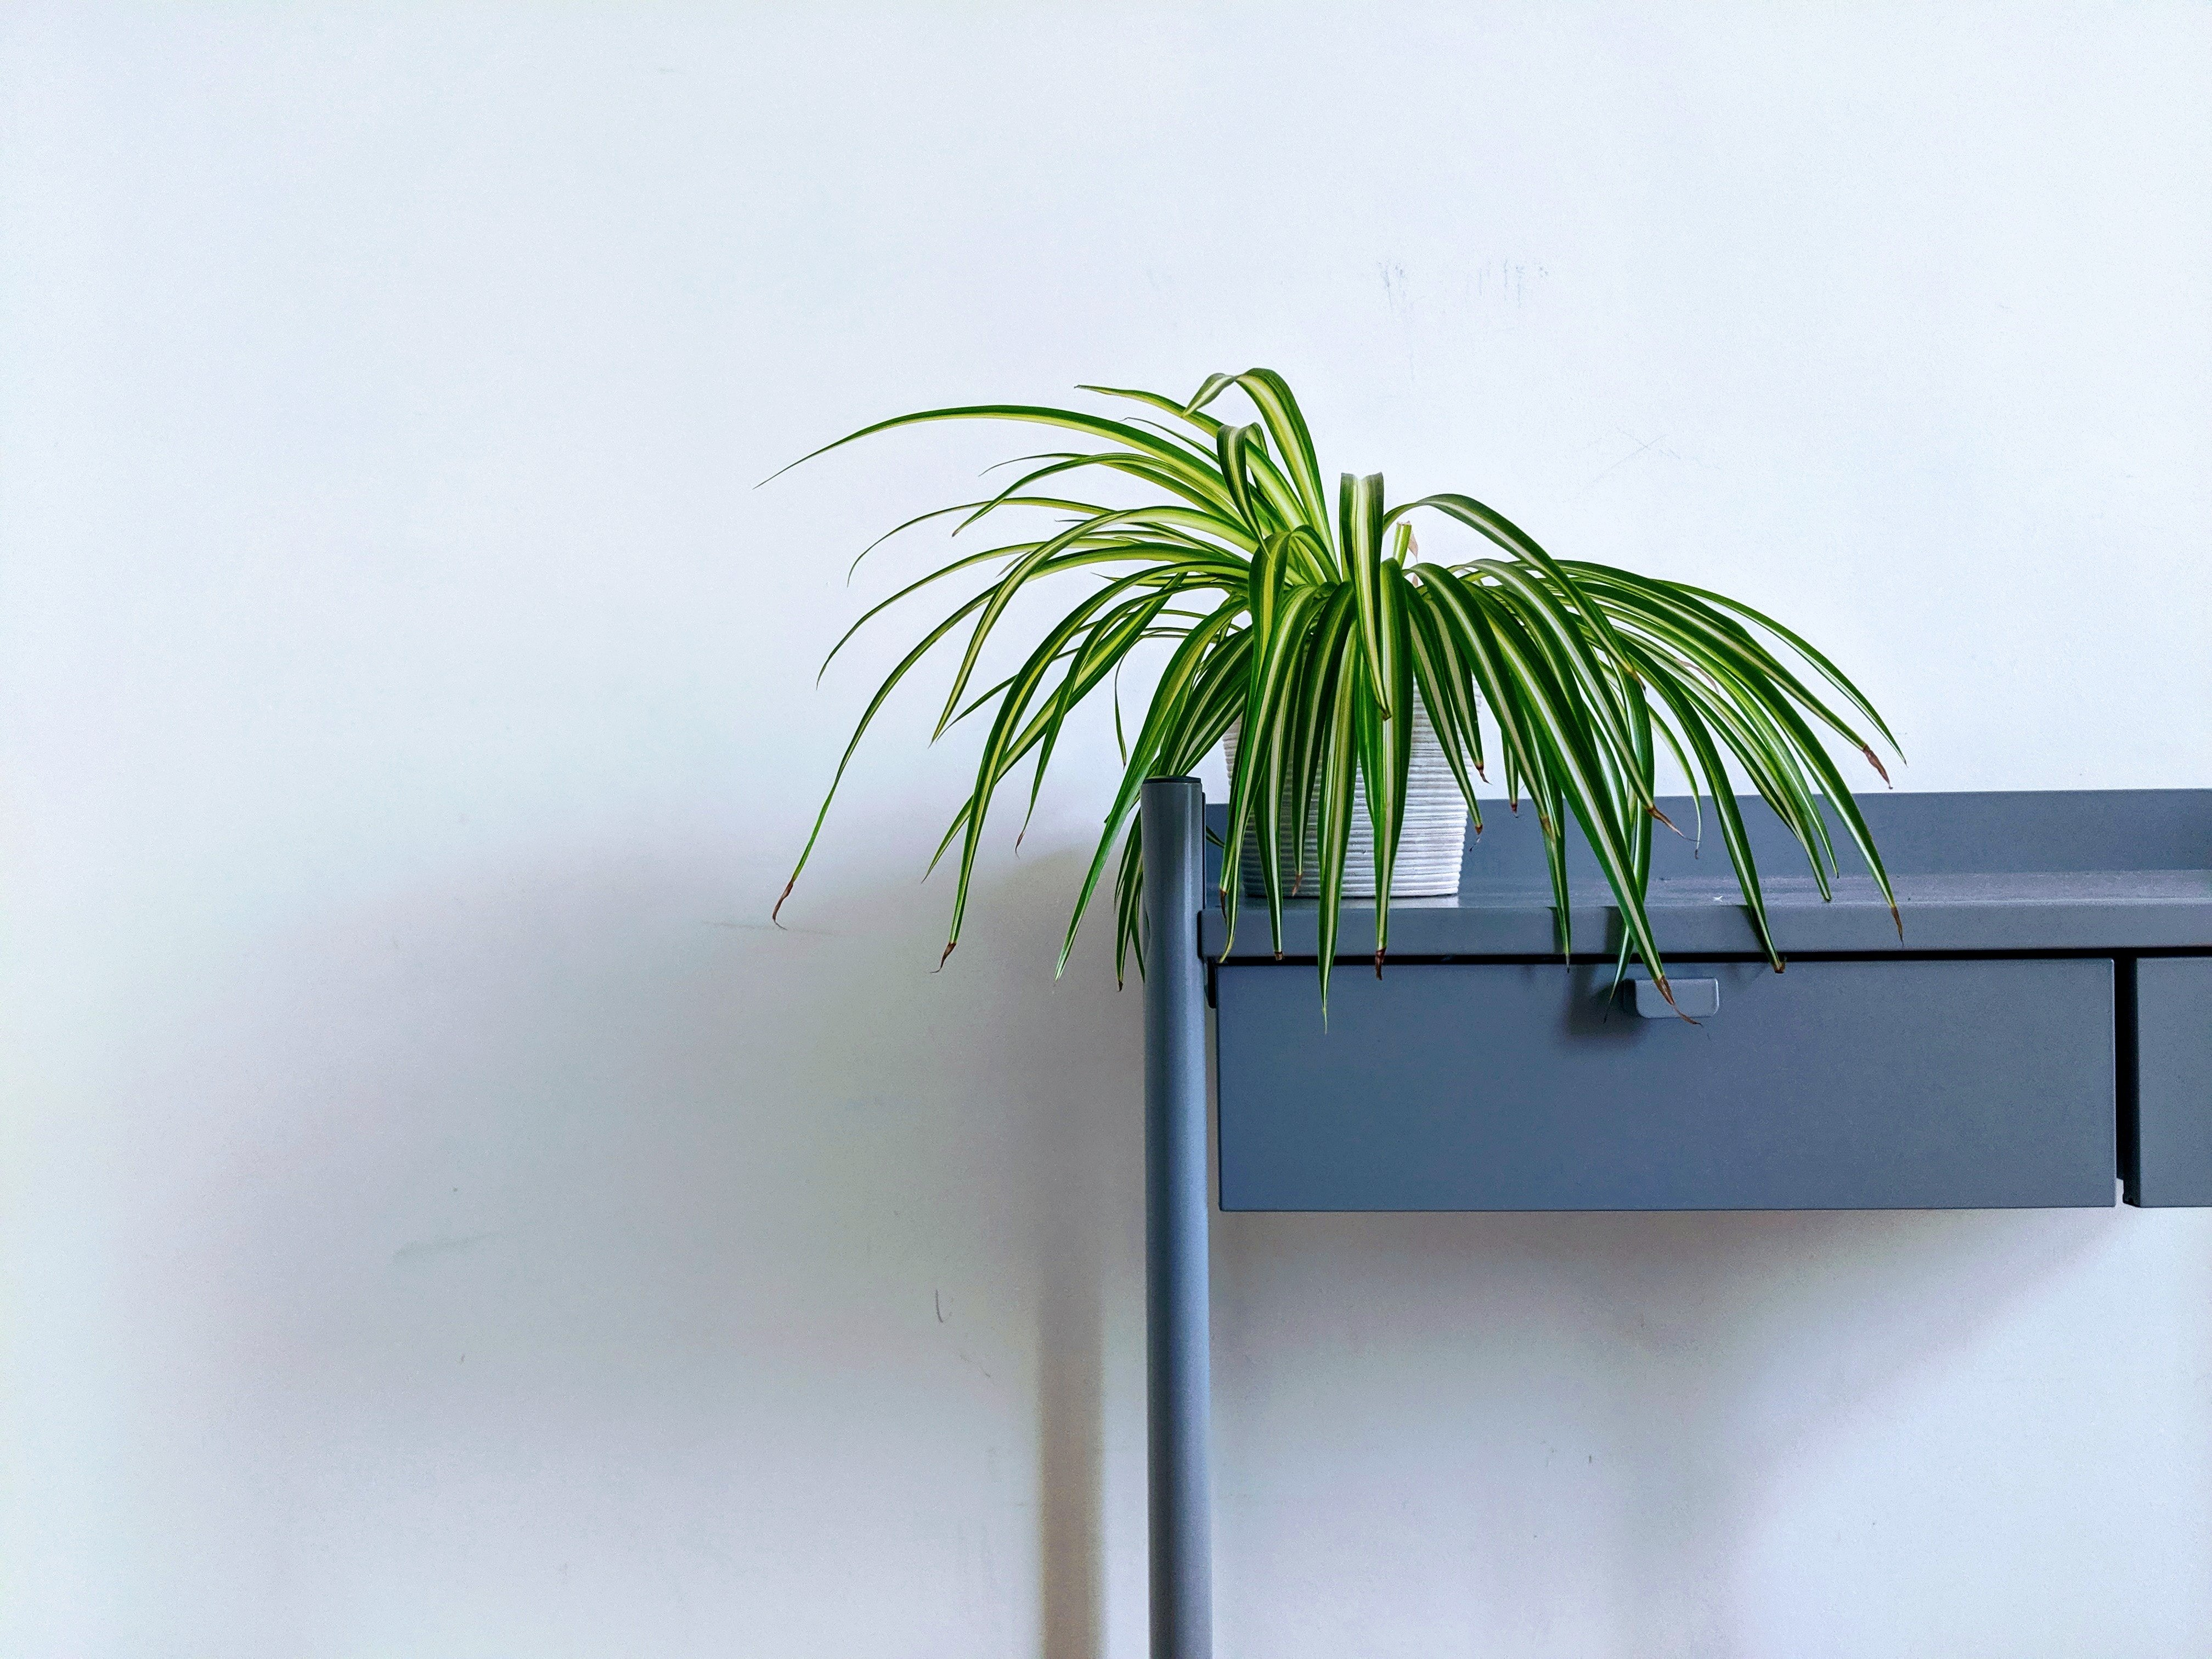 Spider plant (Chlorophytum comosum) on a desk